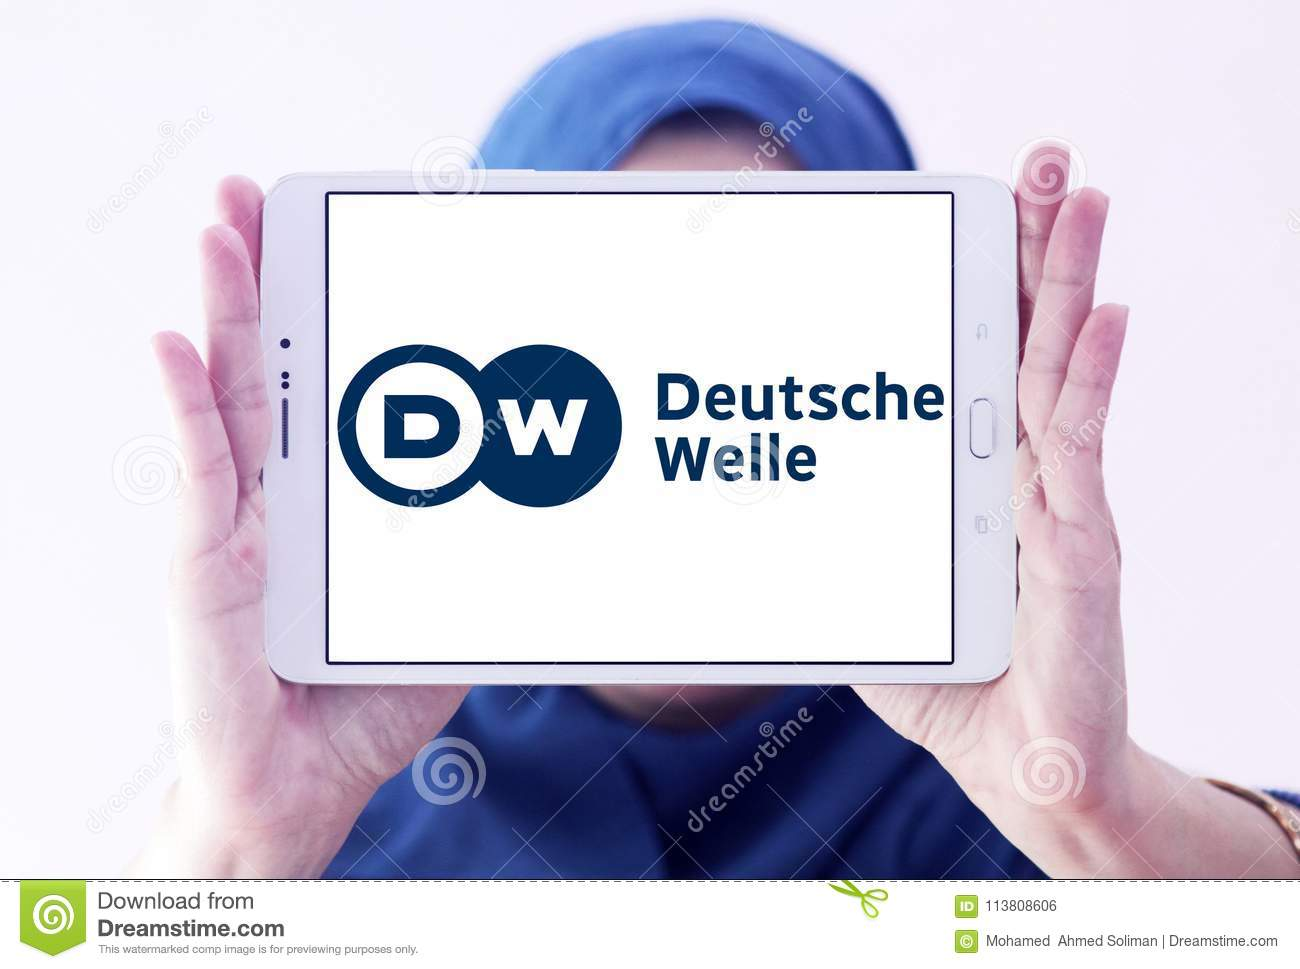 Deutsche Welle broadcaster logo